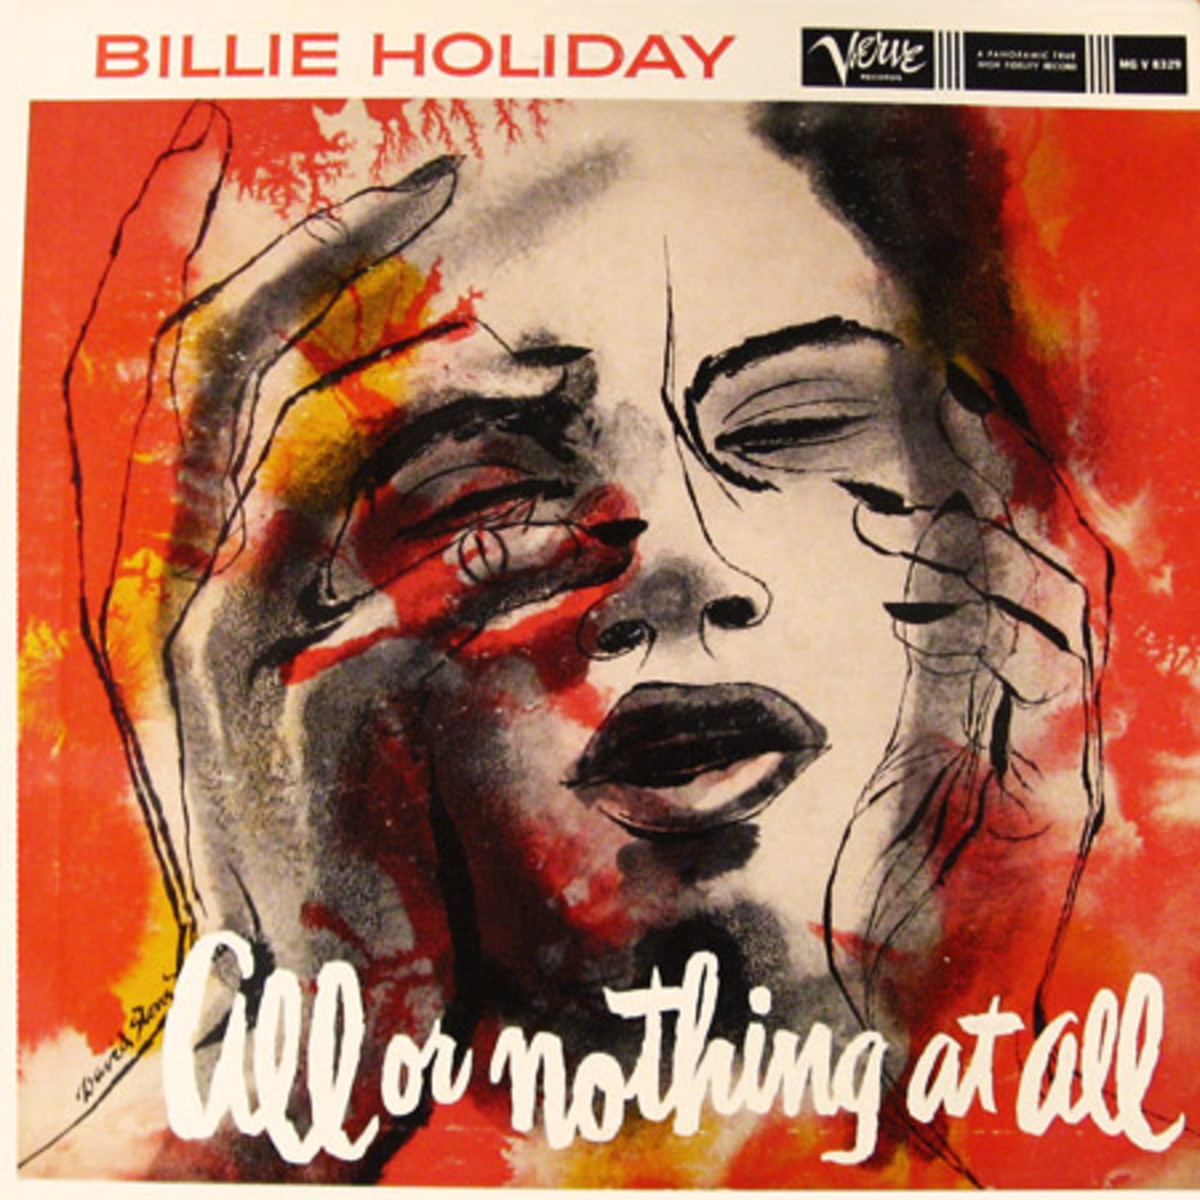 "Billie Holiday ""All Or Nothing At All"" Verve Records MG V 8329 12"" LP Vinyl Record (1957) Album Cover Art by David Stone Martin"